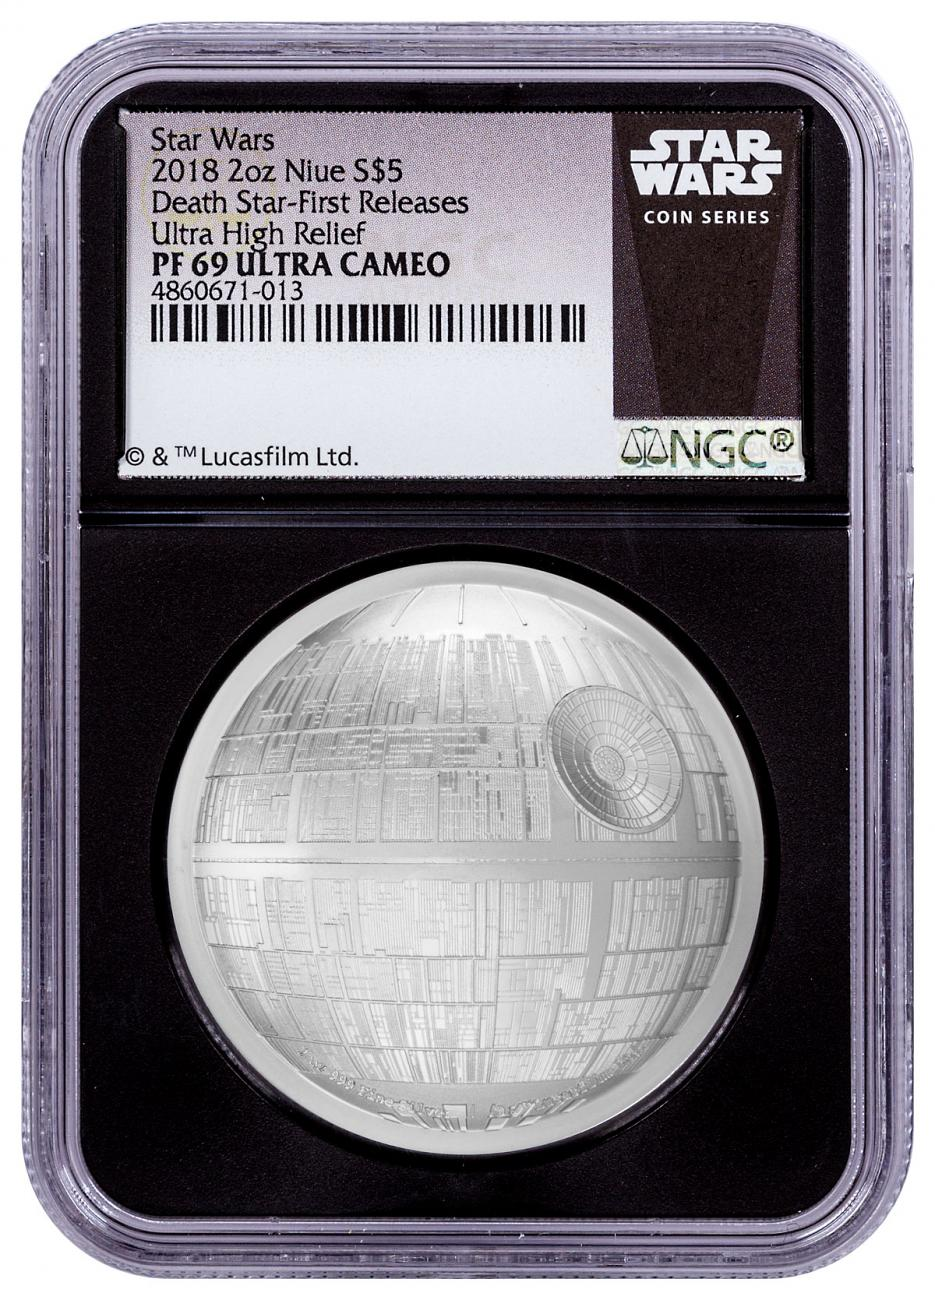 2018 Niue Star Wars - Death Star Ultra High Relief Domed 2 oz Silver Proof $5 Coin NGC PF69 UC FR Black Core Holder Exclusive Star Wars Label